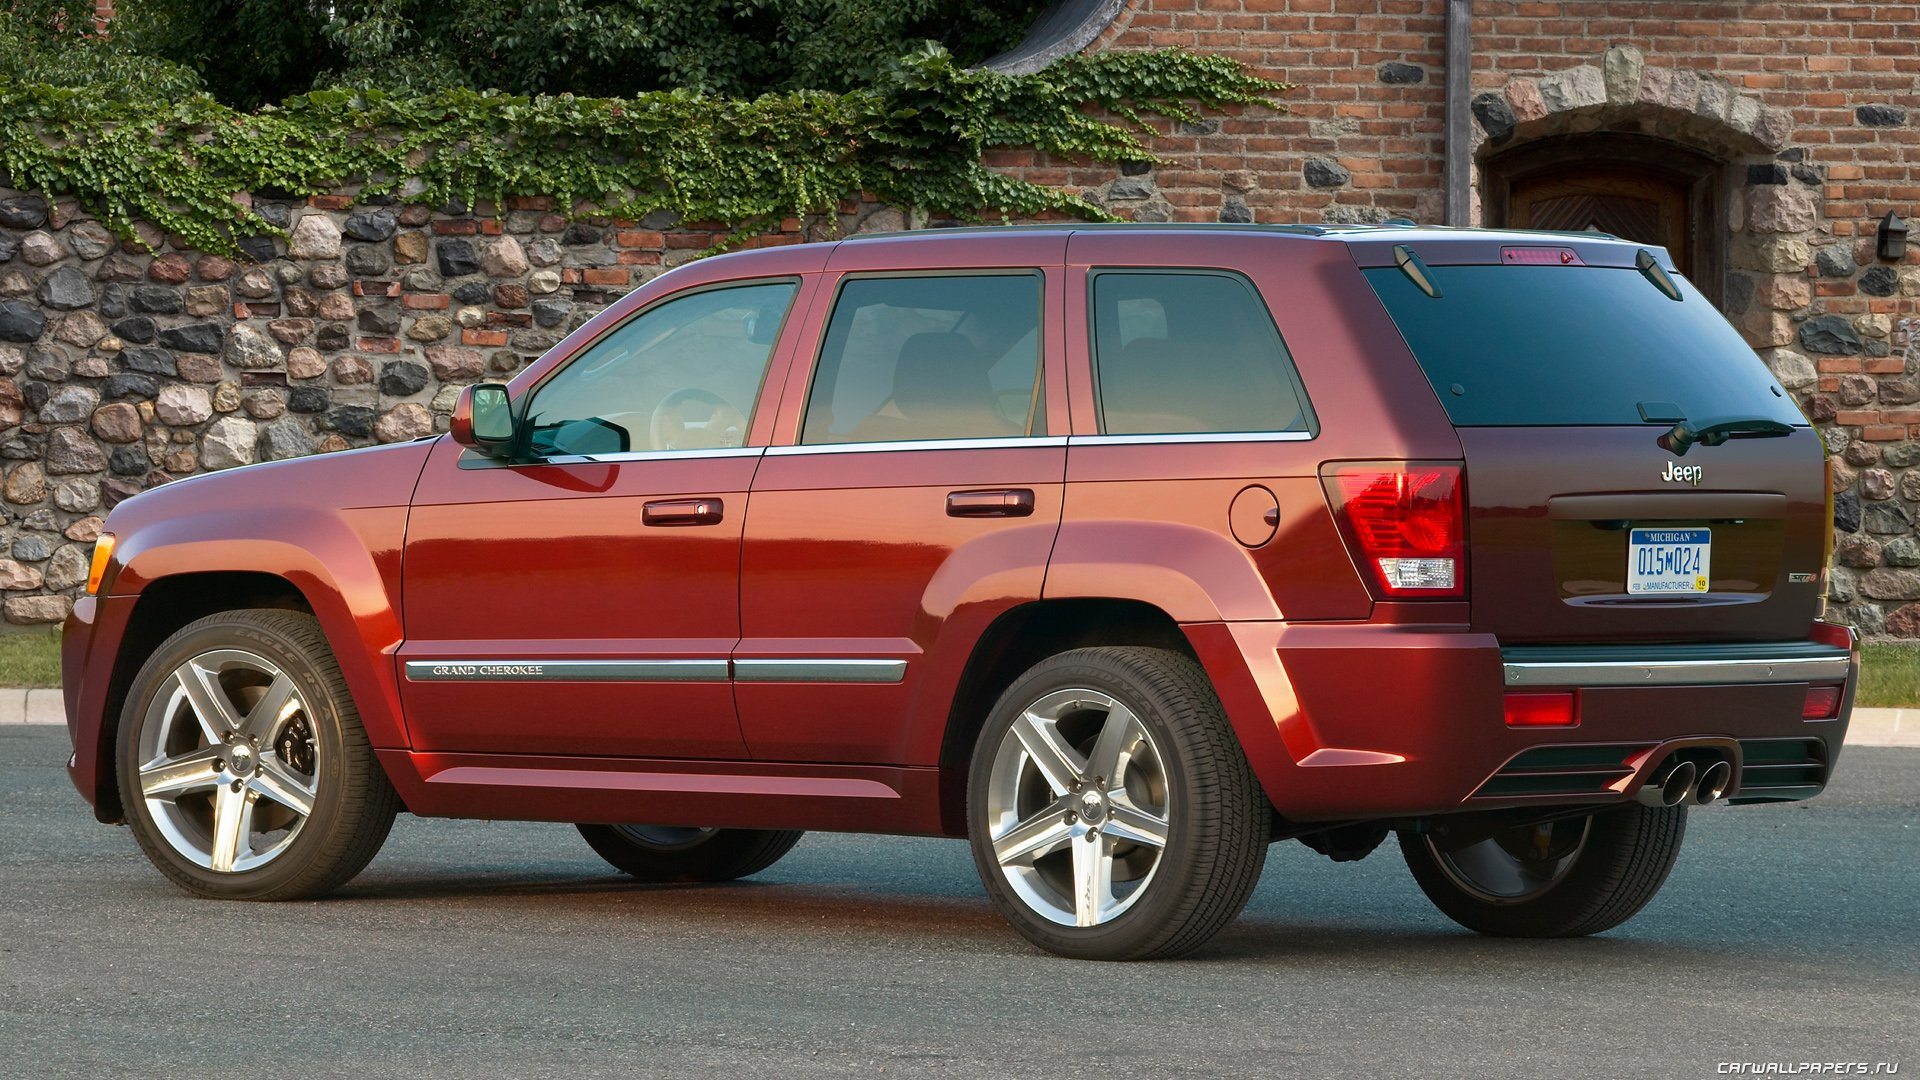 car wallpapers jeep grand cherokee car wallpapers jeep 1920x1080